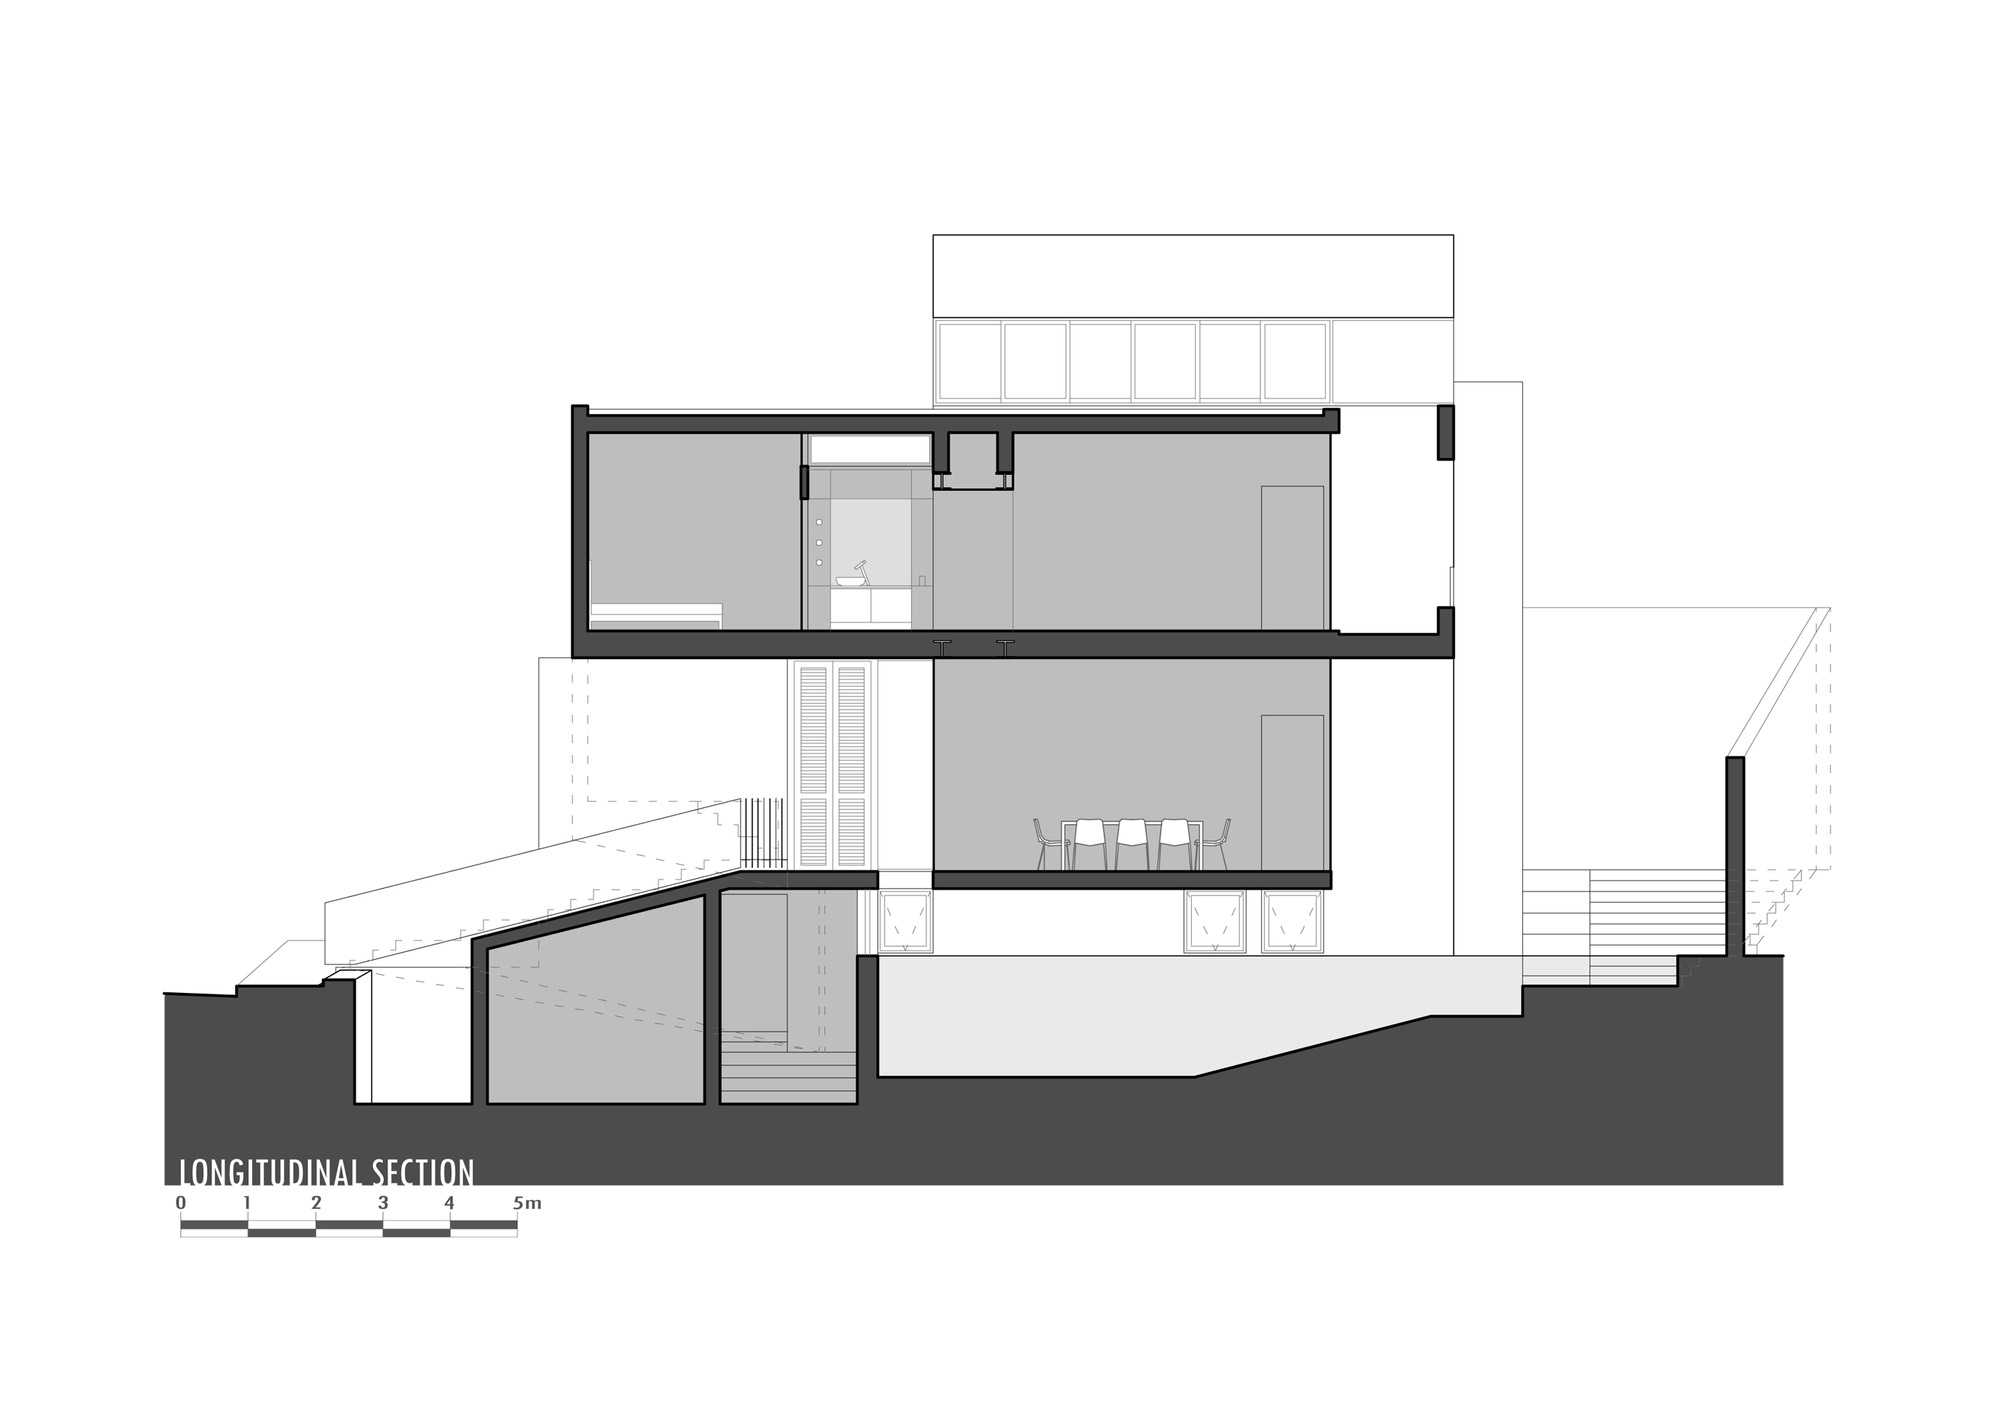 Section, Hanging Home in Naxxar, Malta by Chris Briffa Architects